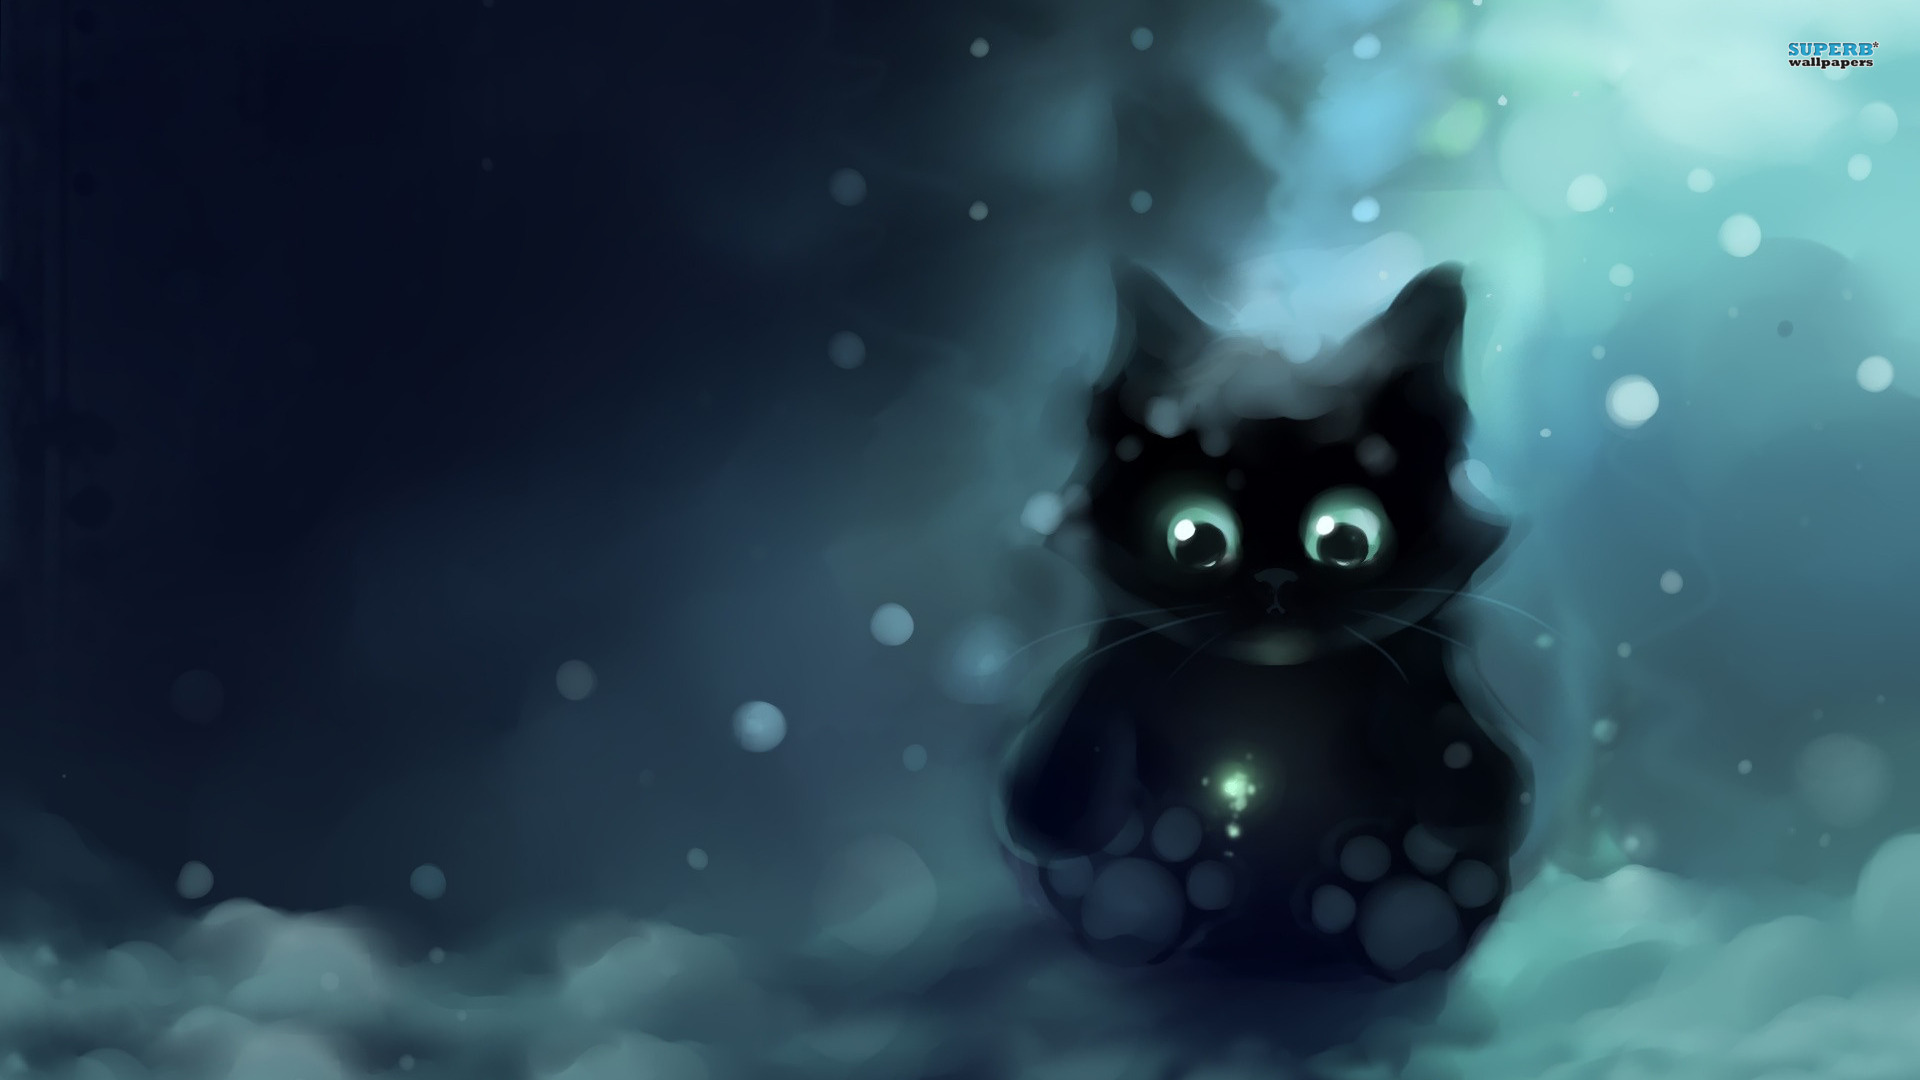 Drawn wallpaper cute anime cat Px Free Animal And 1920x1080